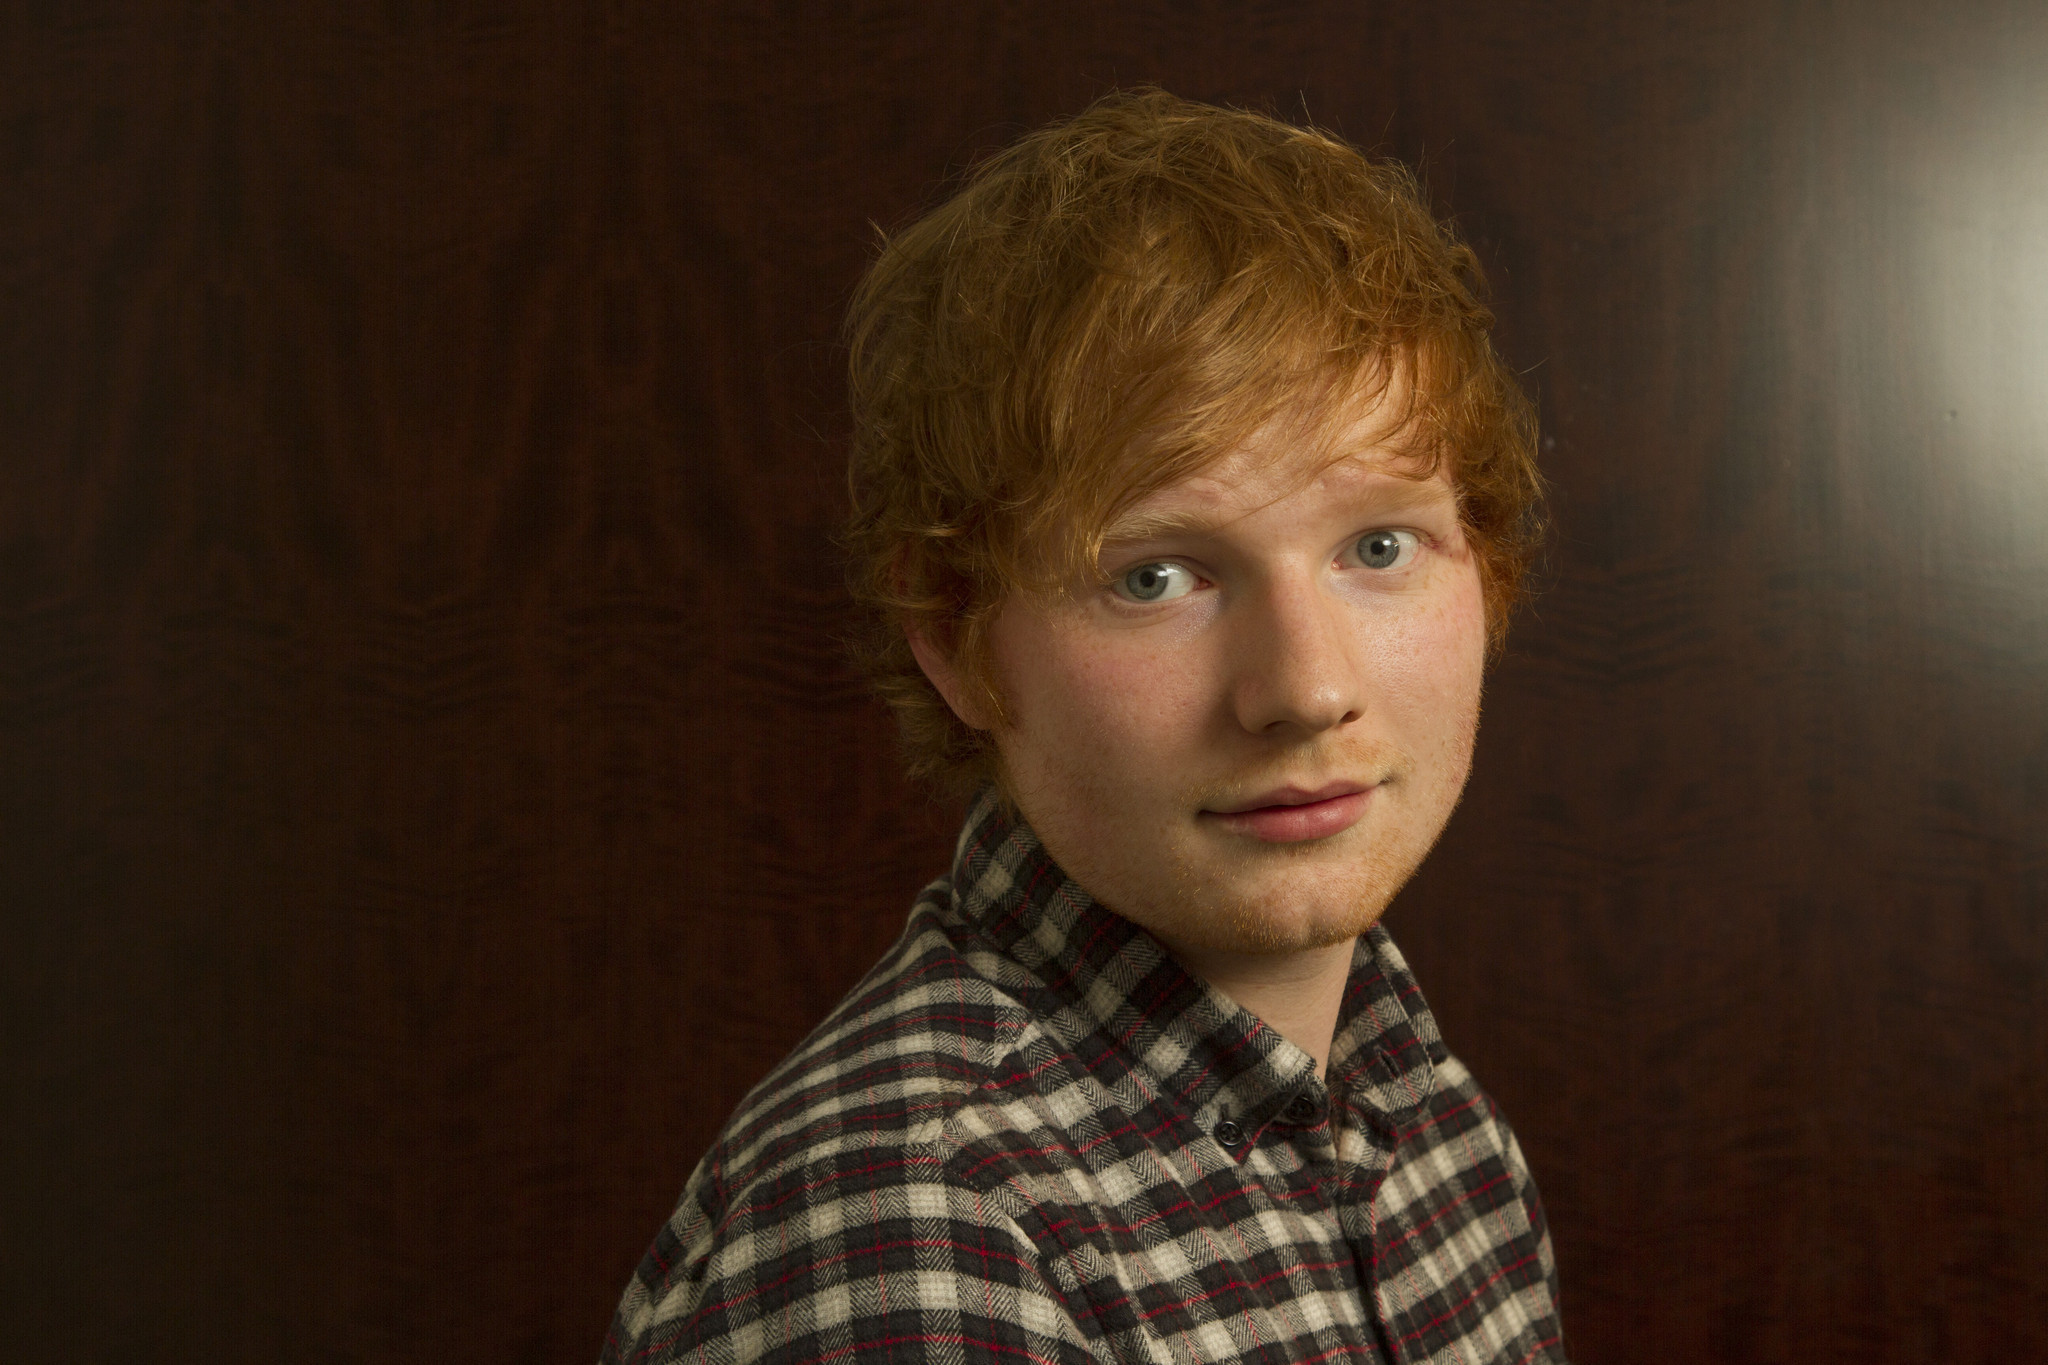 ed Sheeran Album Drawing ed Sheeran Pop Stardom's